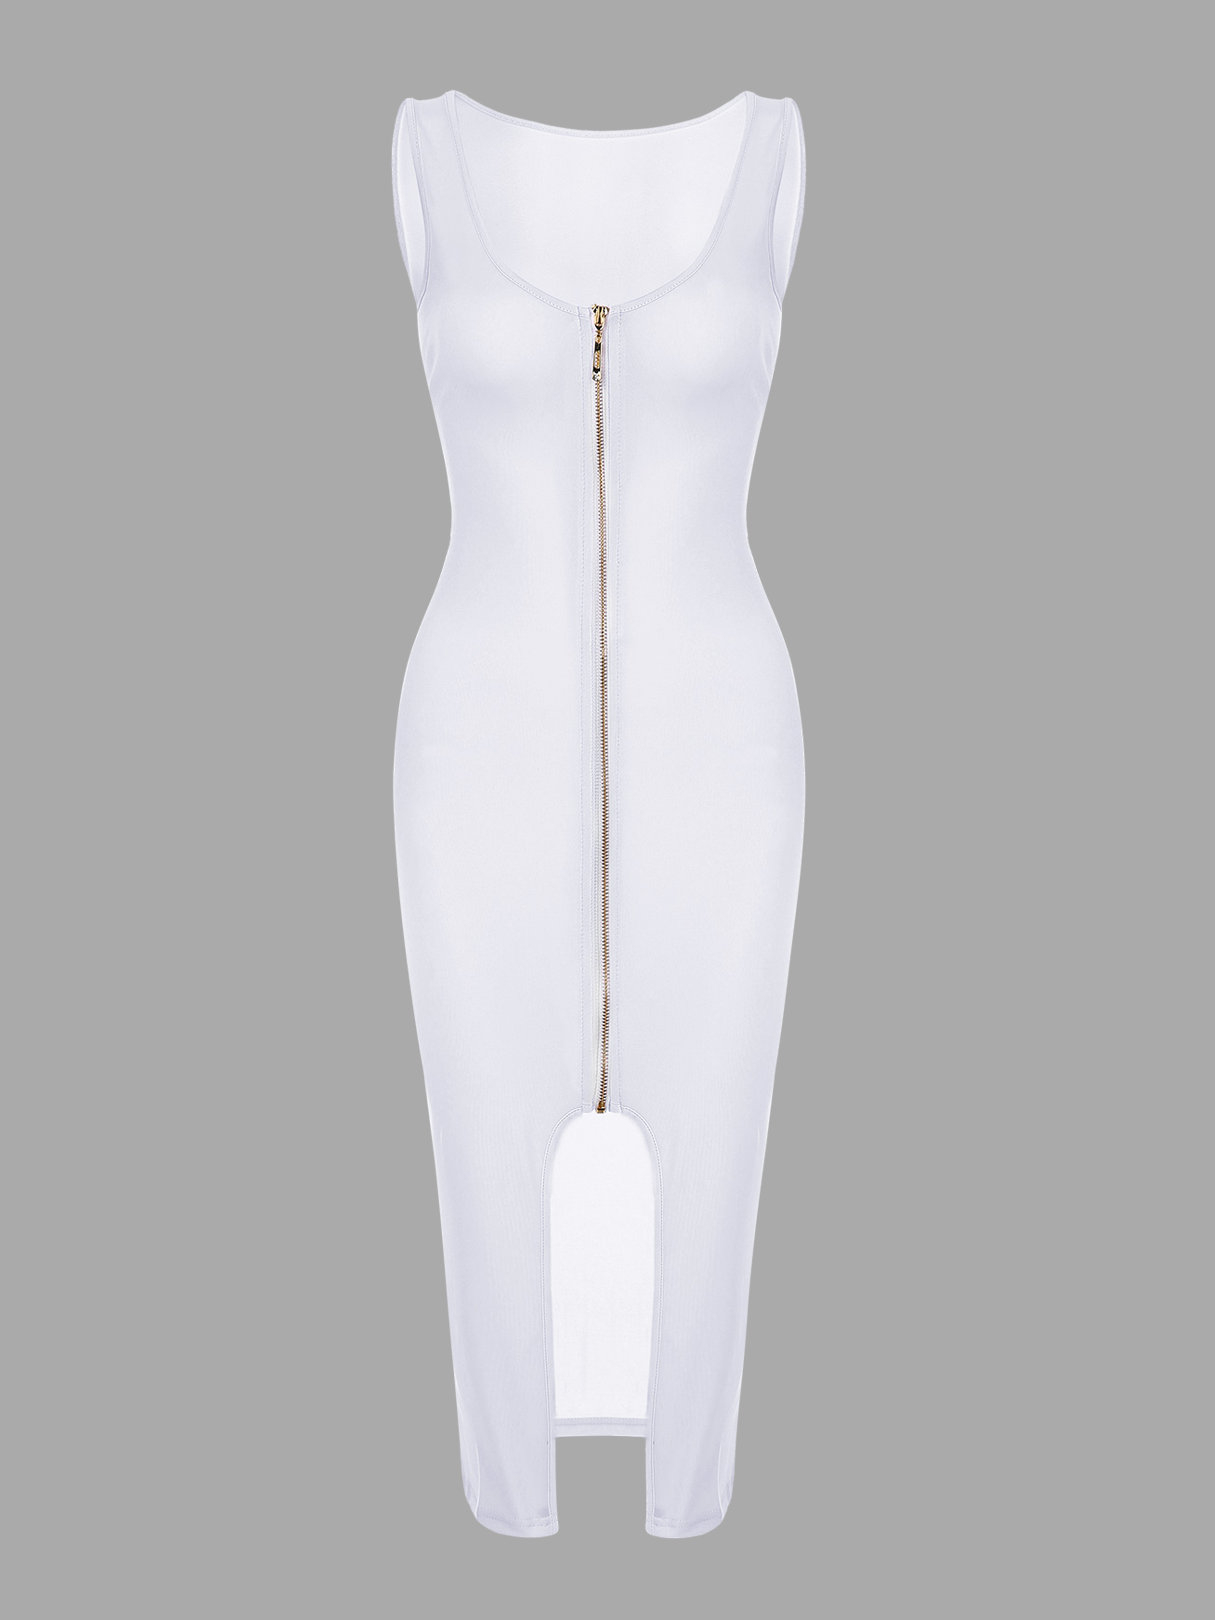 White Fashion Round Neck Zip Front Bodycon Cami Dress